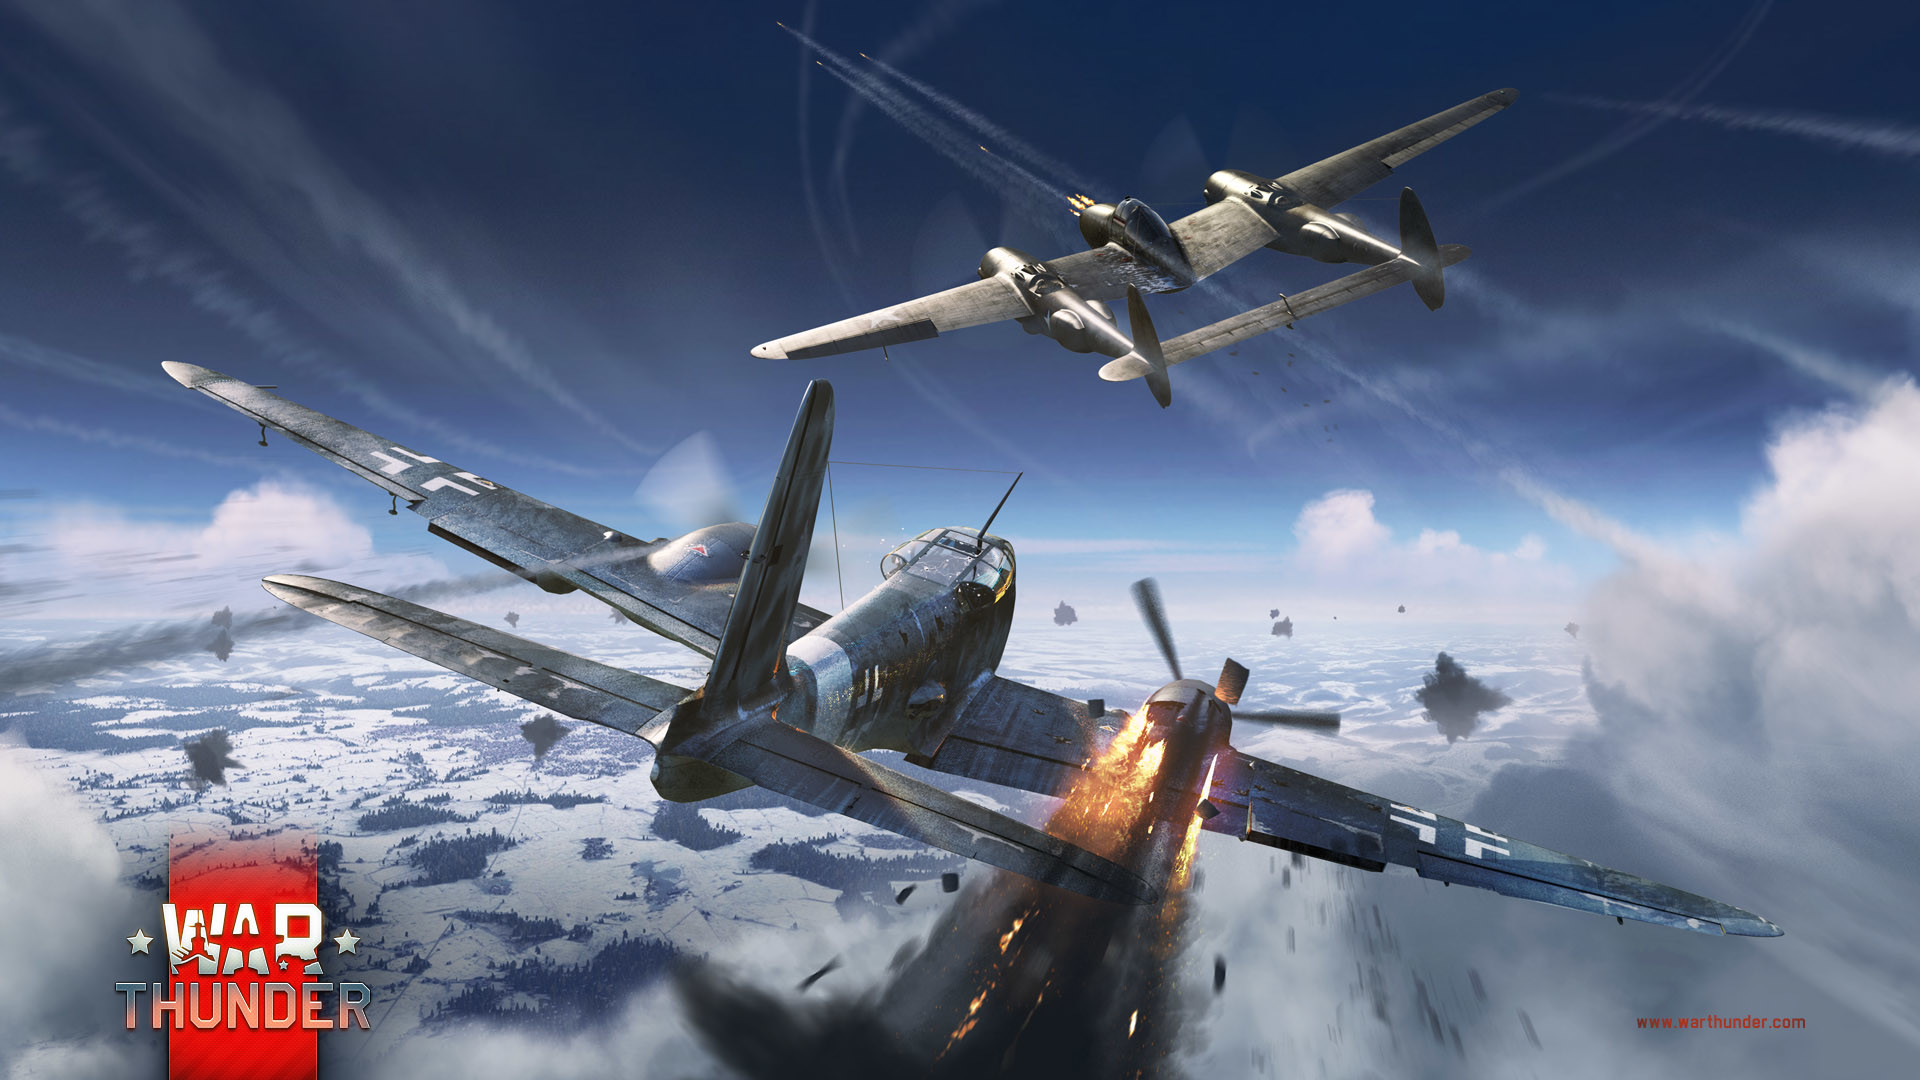 Me 410 heavy fighters (A-1 and B-1)